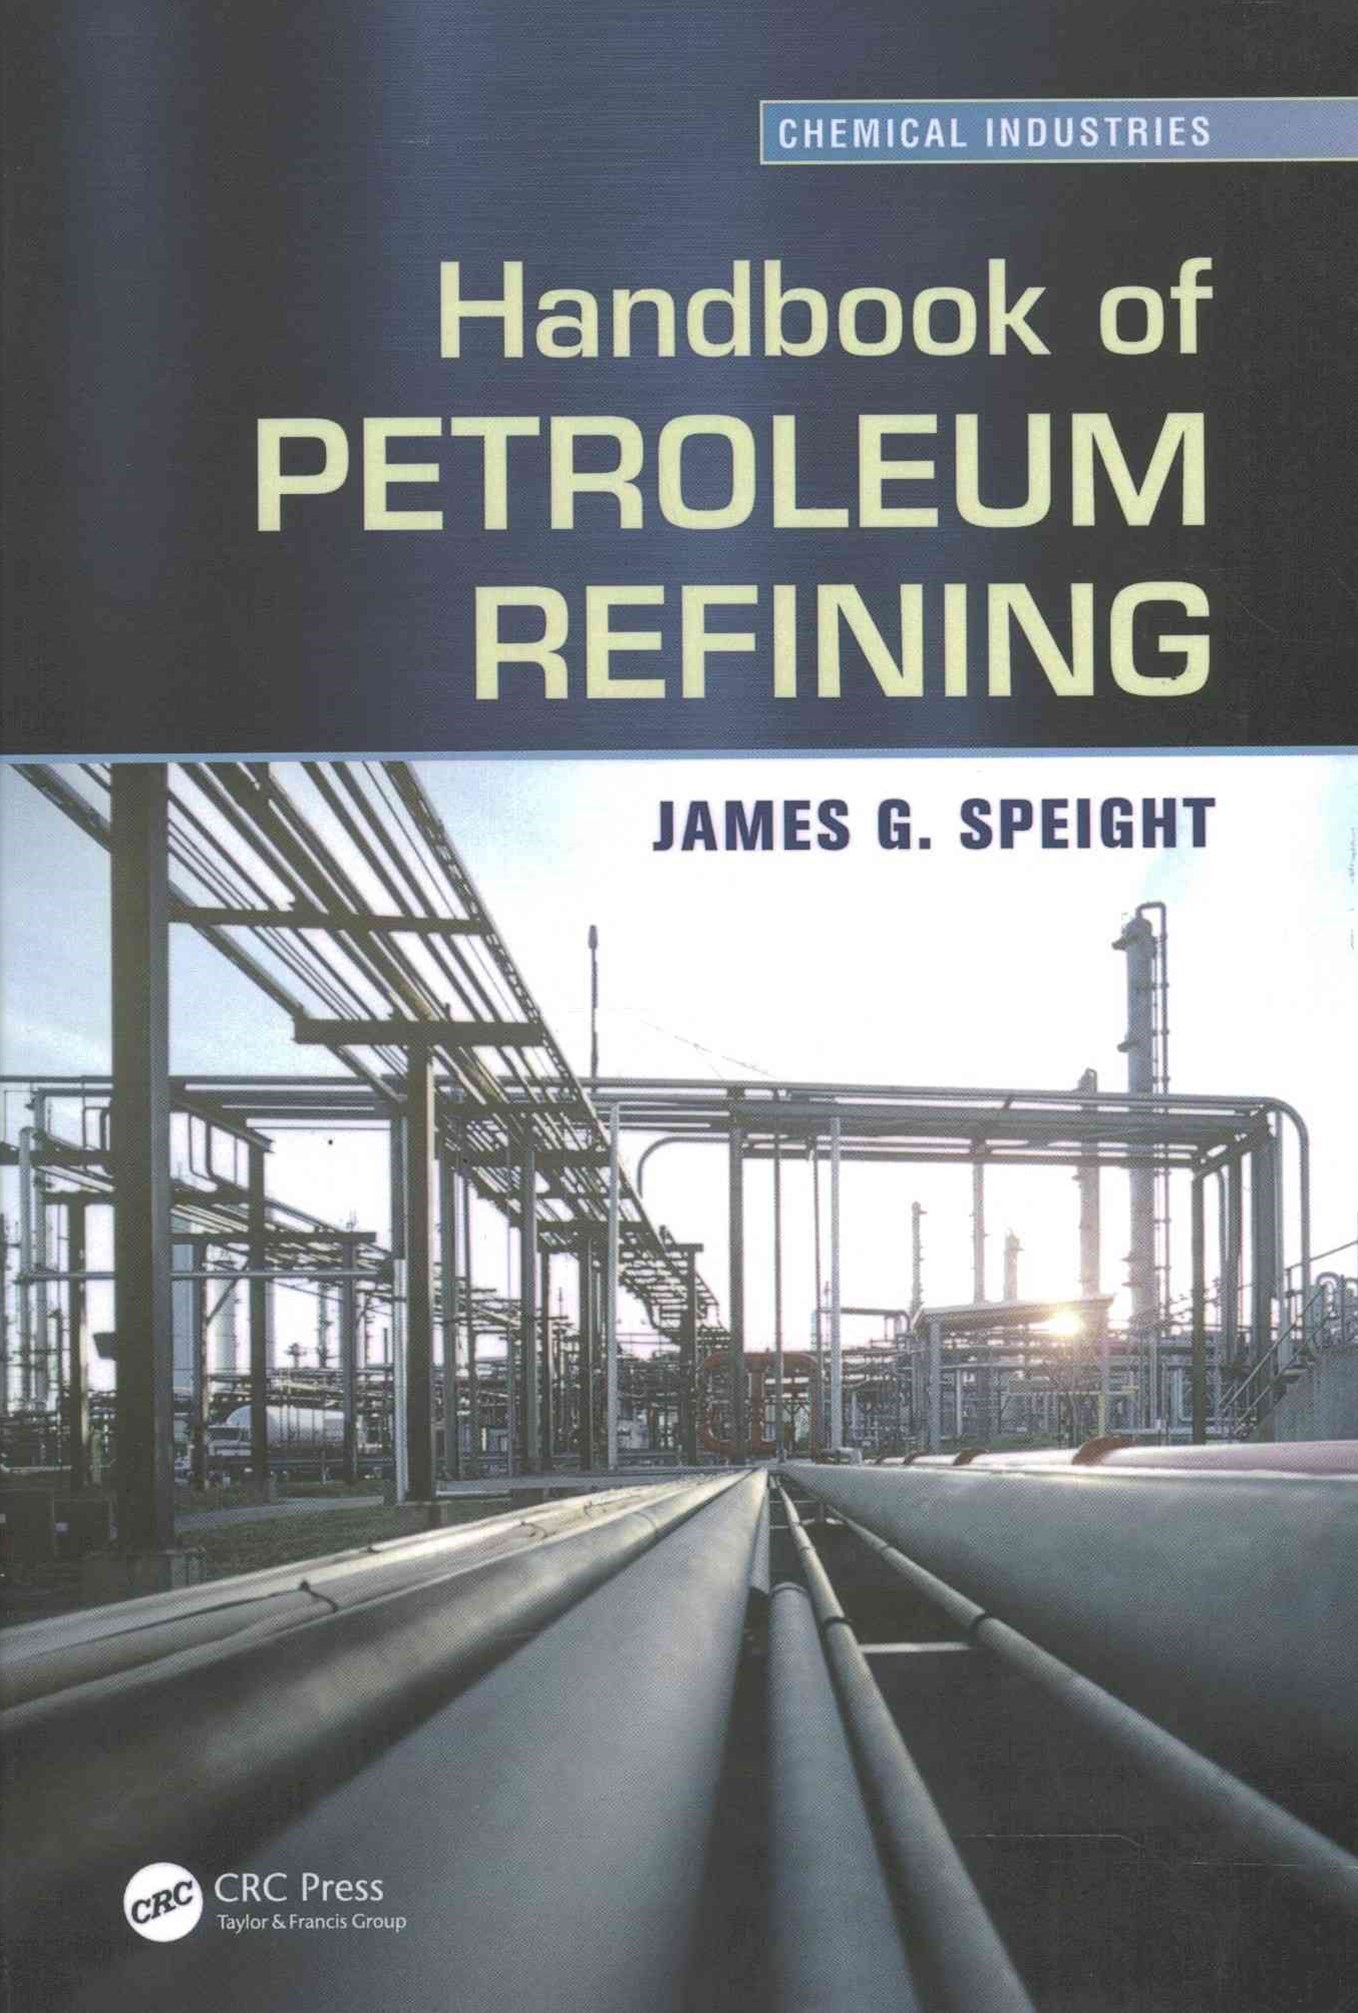 Handbook of Petroleum Refining